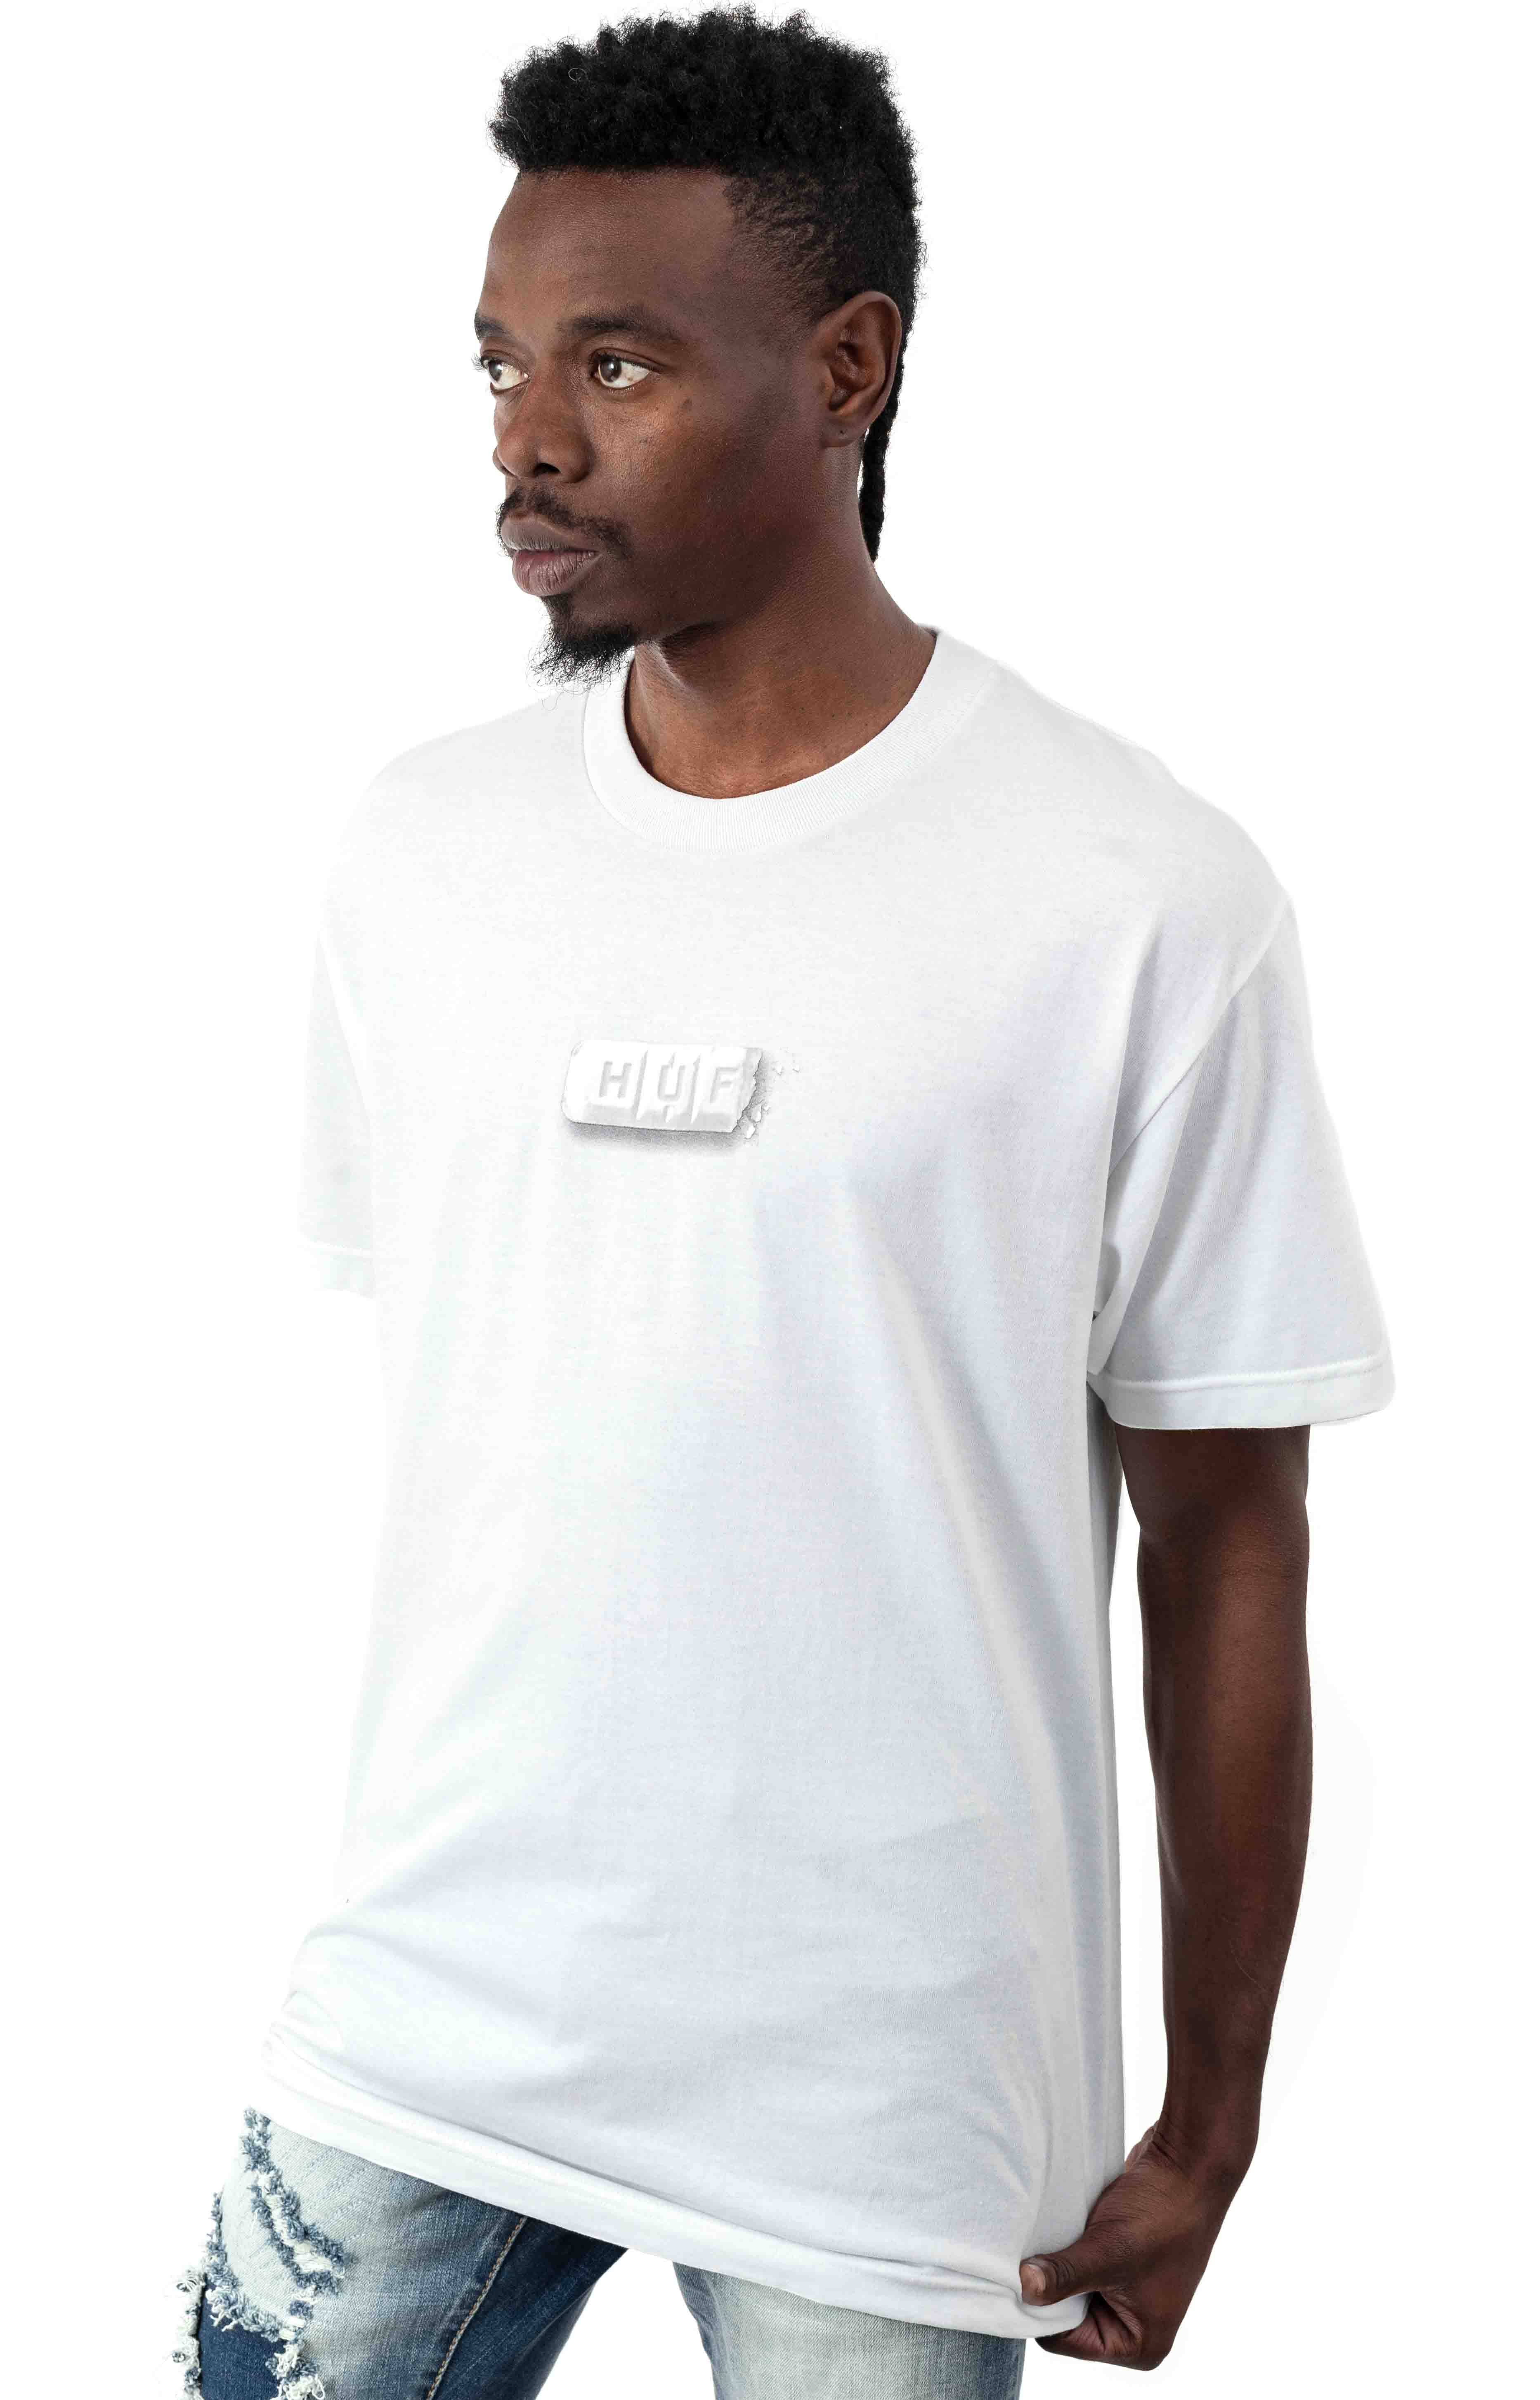 Youth Of Today T-Shirt - White  2